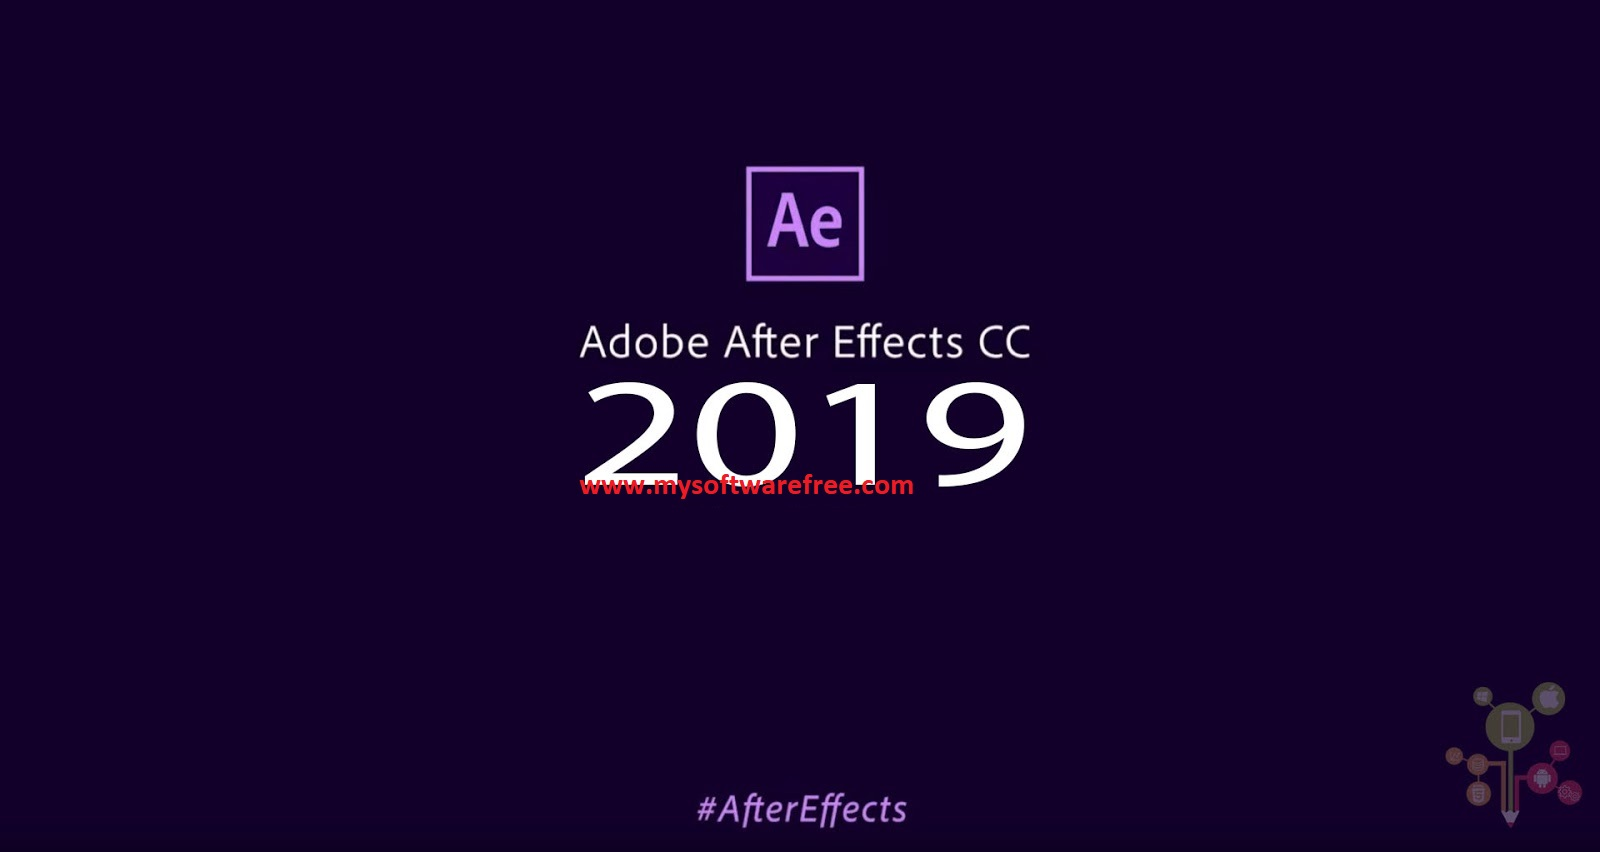 ae adobe after effects free download